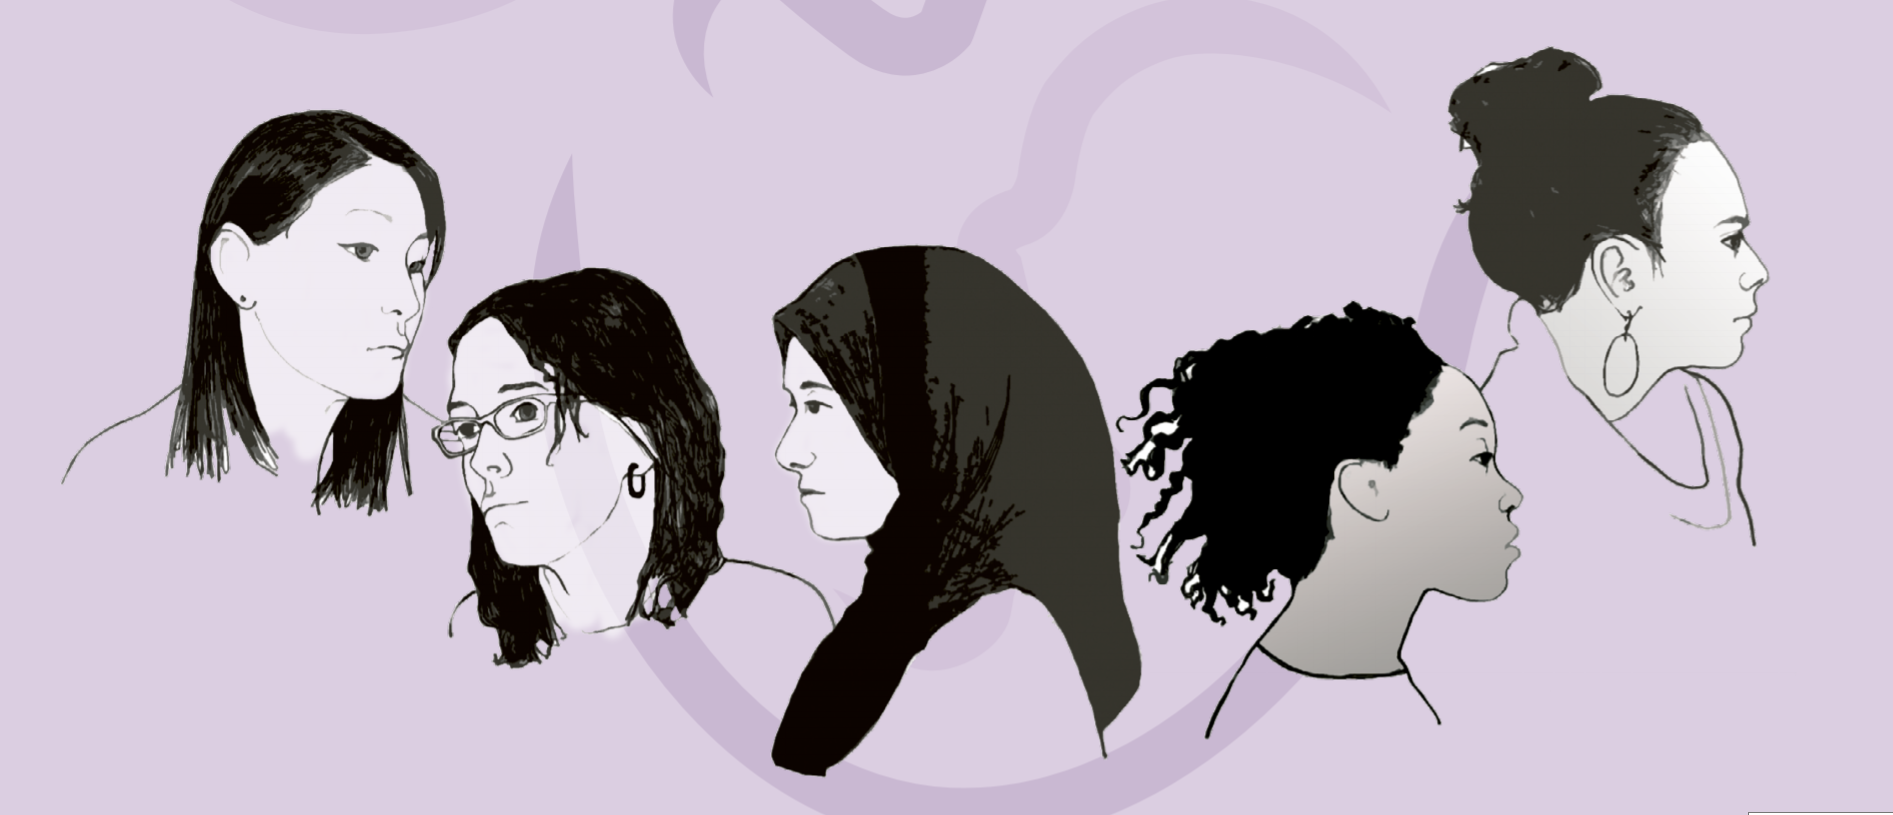 Illustration of five different women